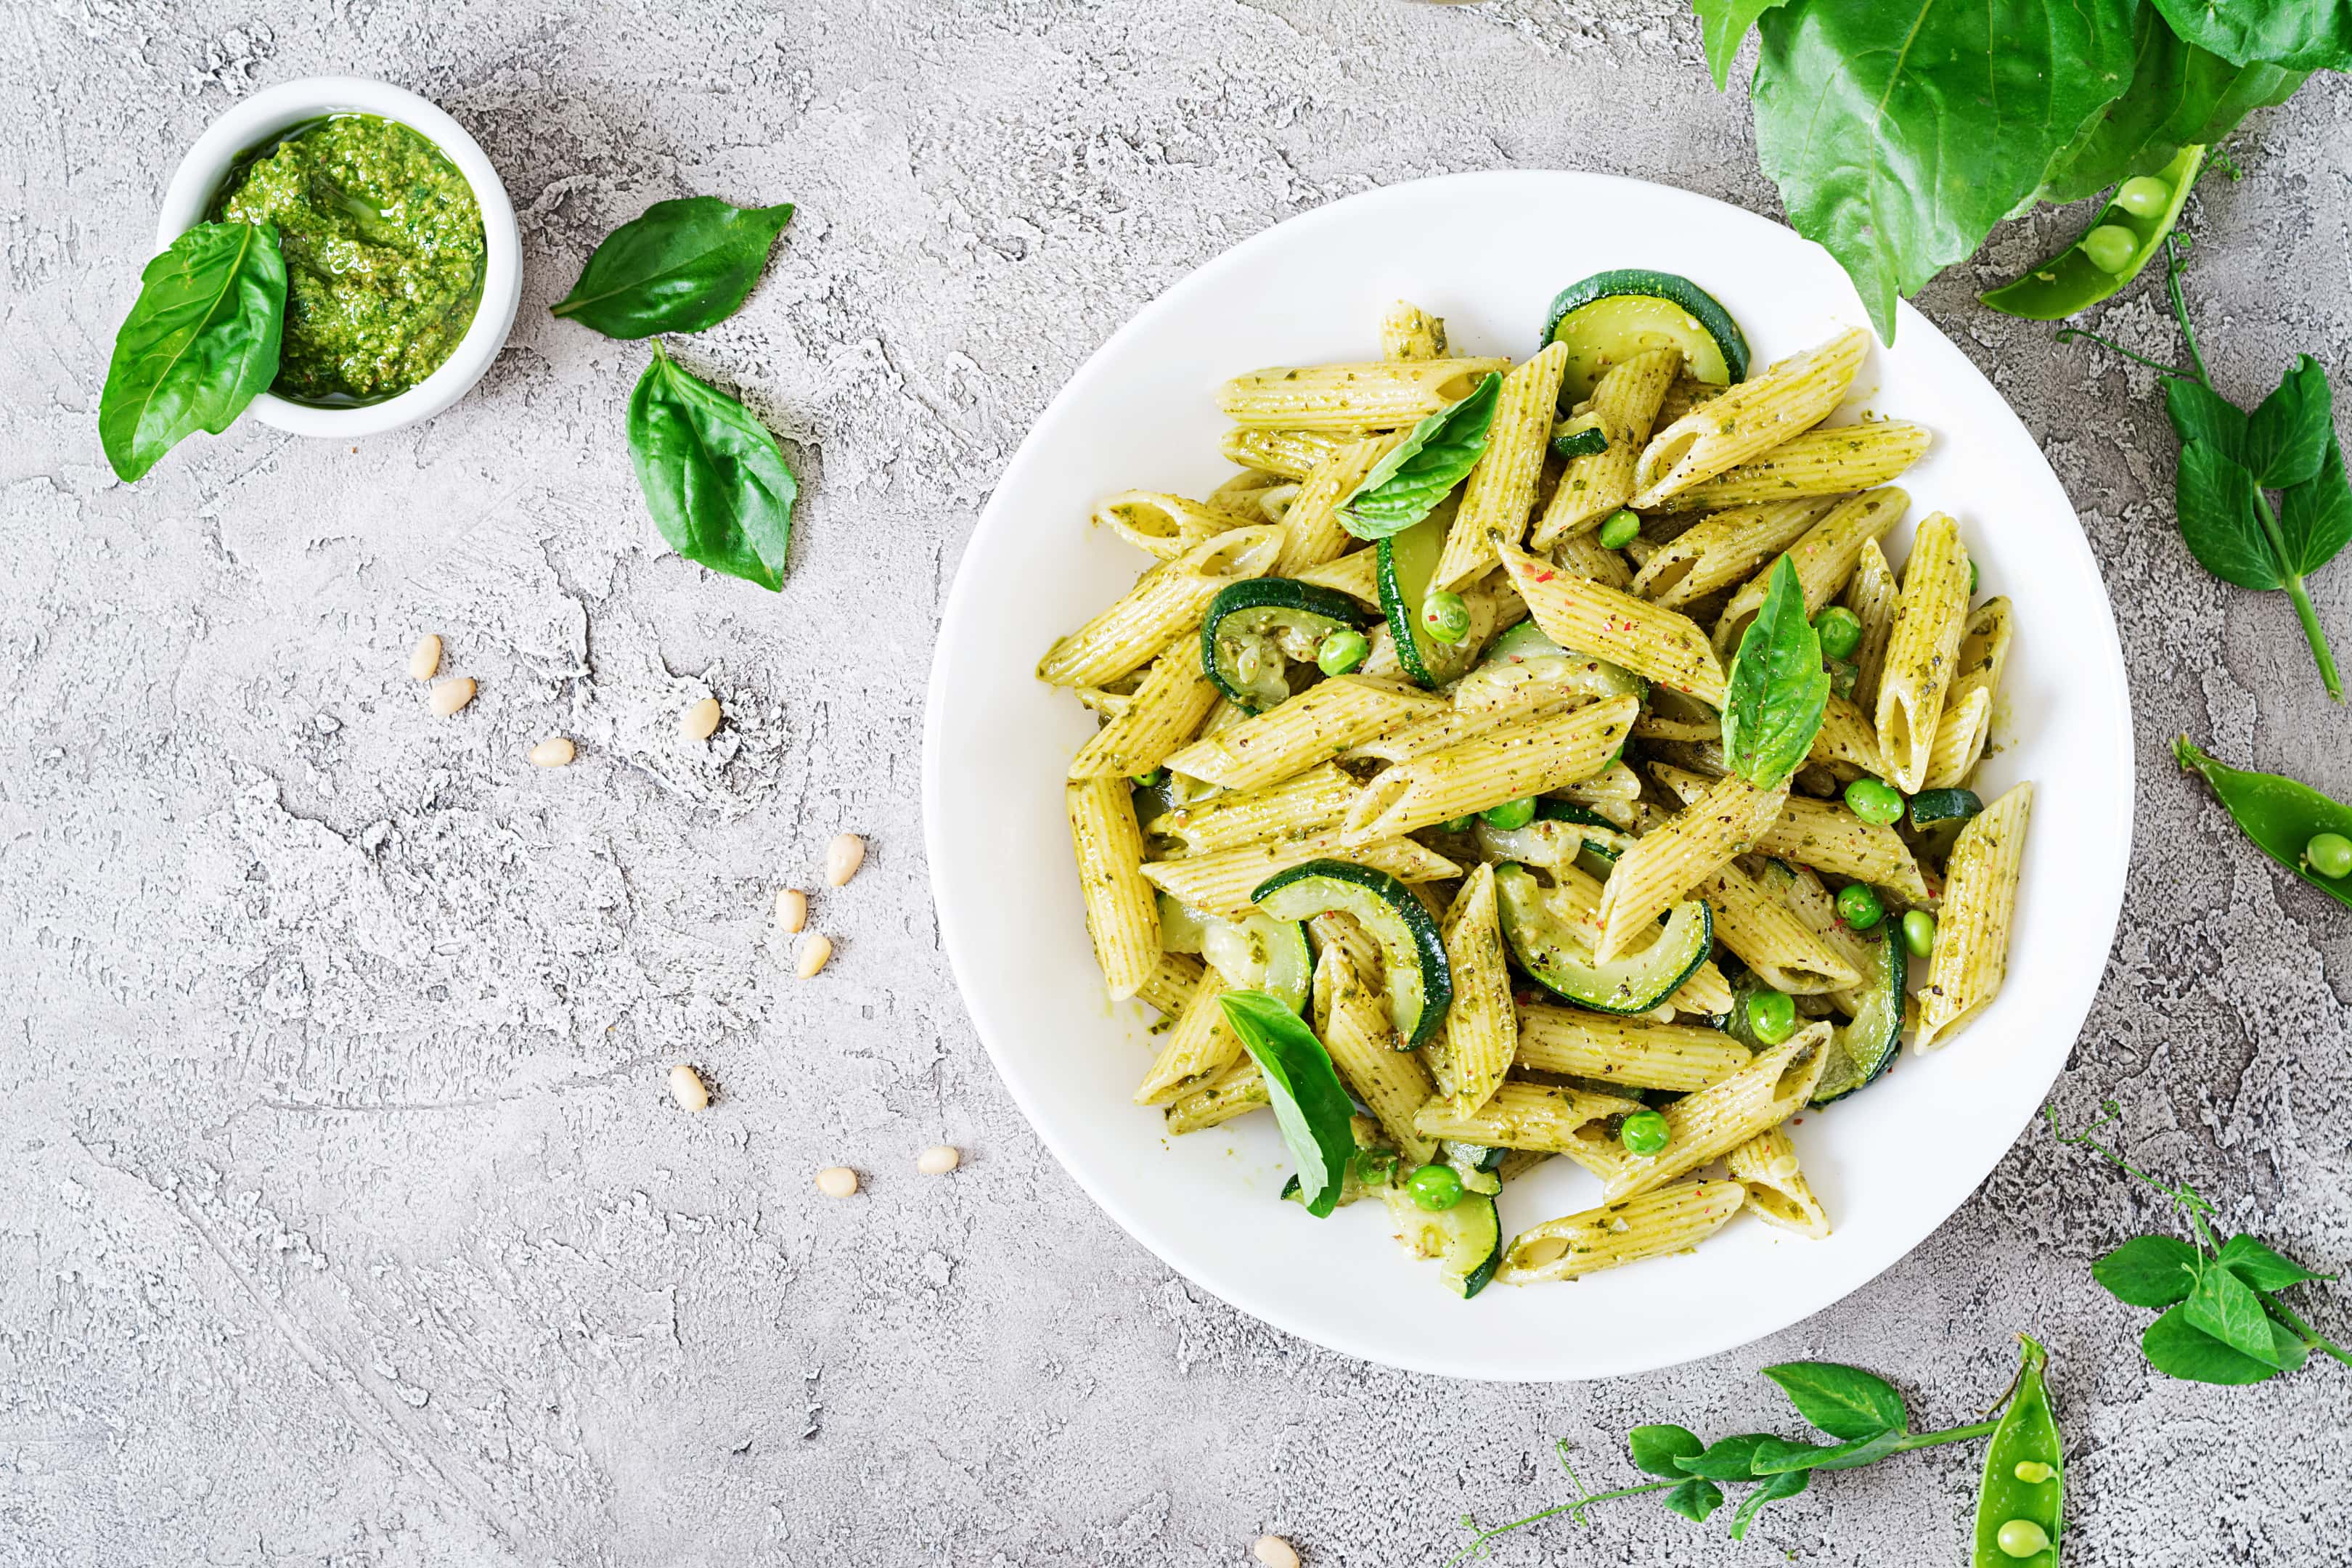 Penne pasta with pesto sauce, zucchini, green peas and basil